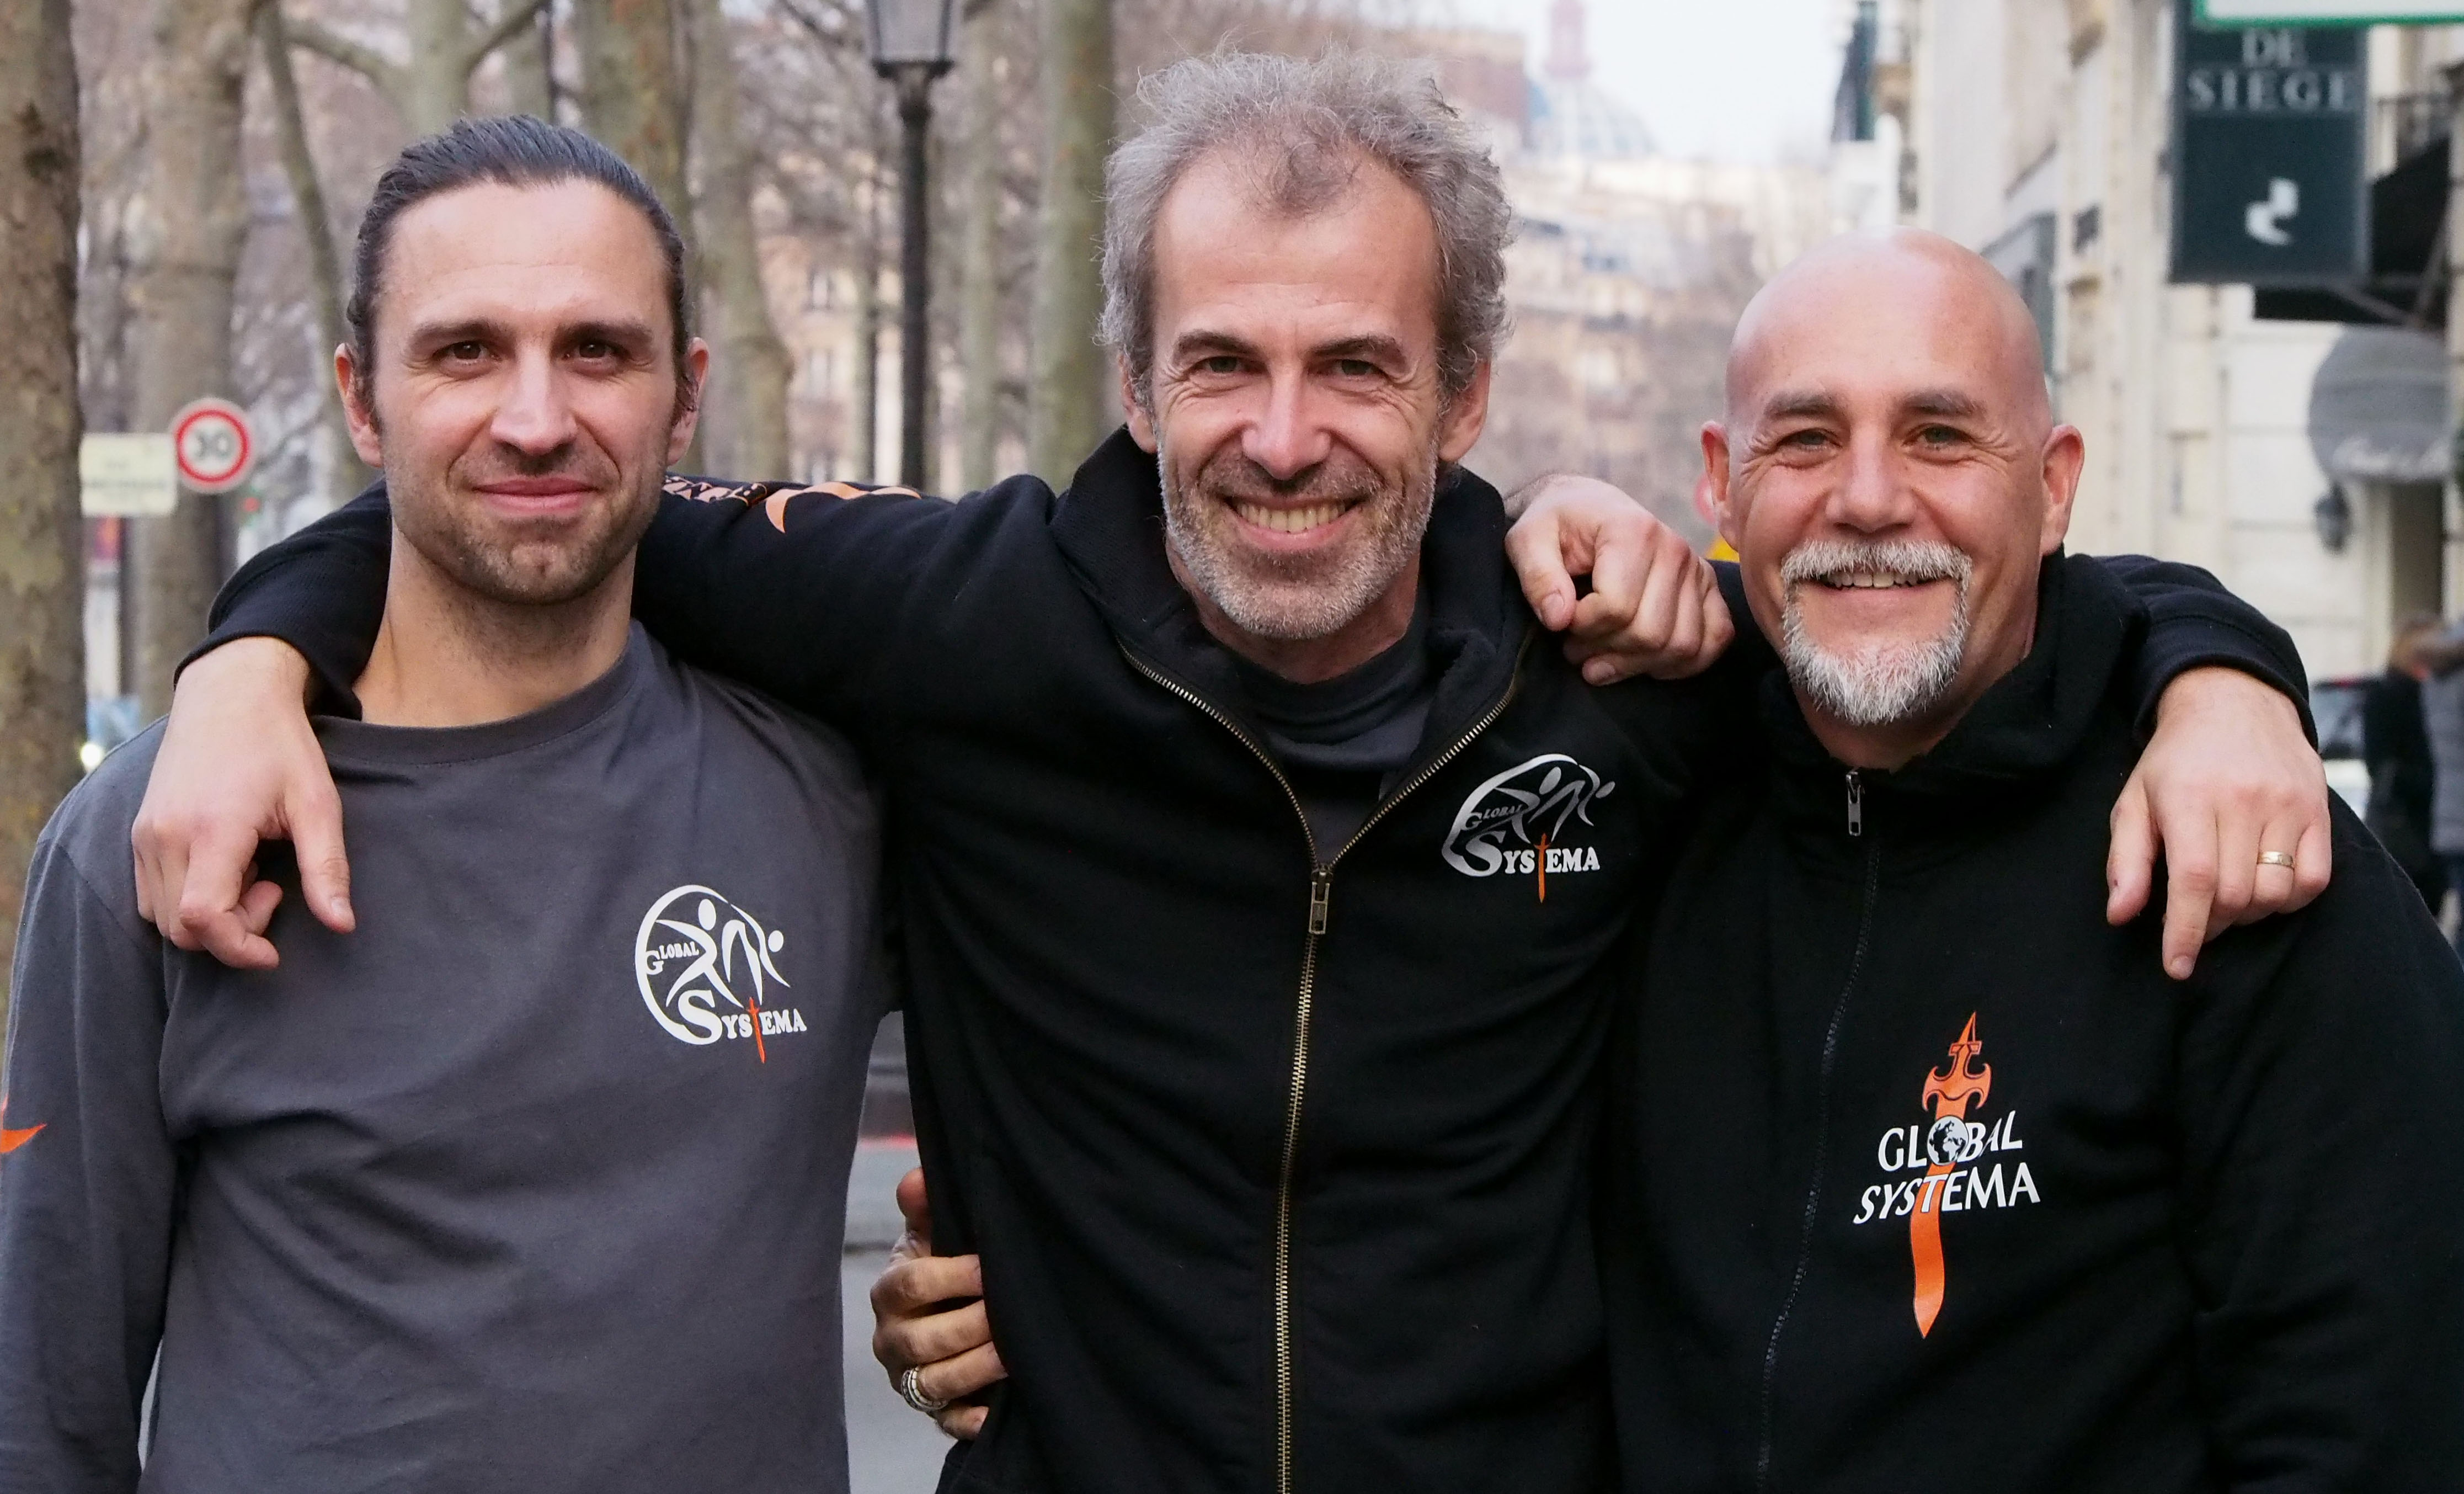 Global Systema - Olivier Putz, Jean-Marie Frécon, Manu Martin